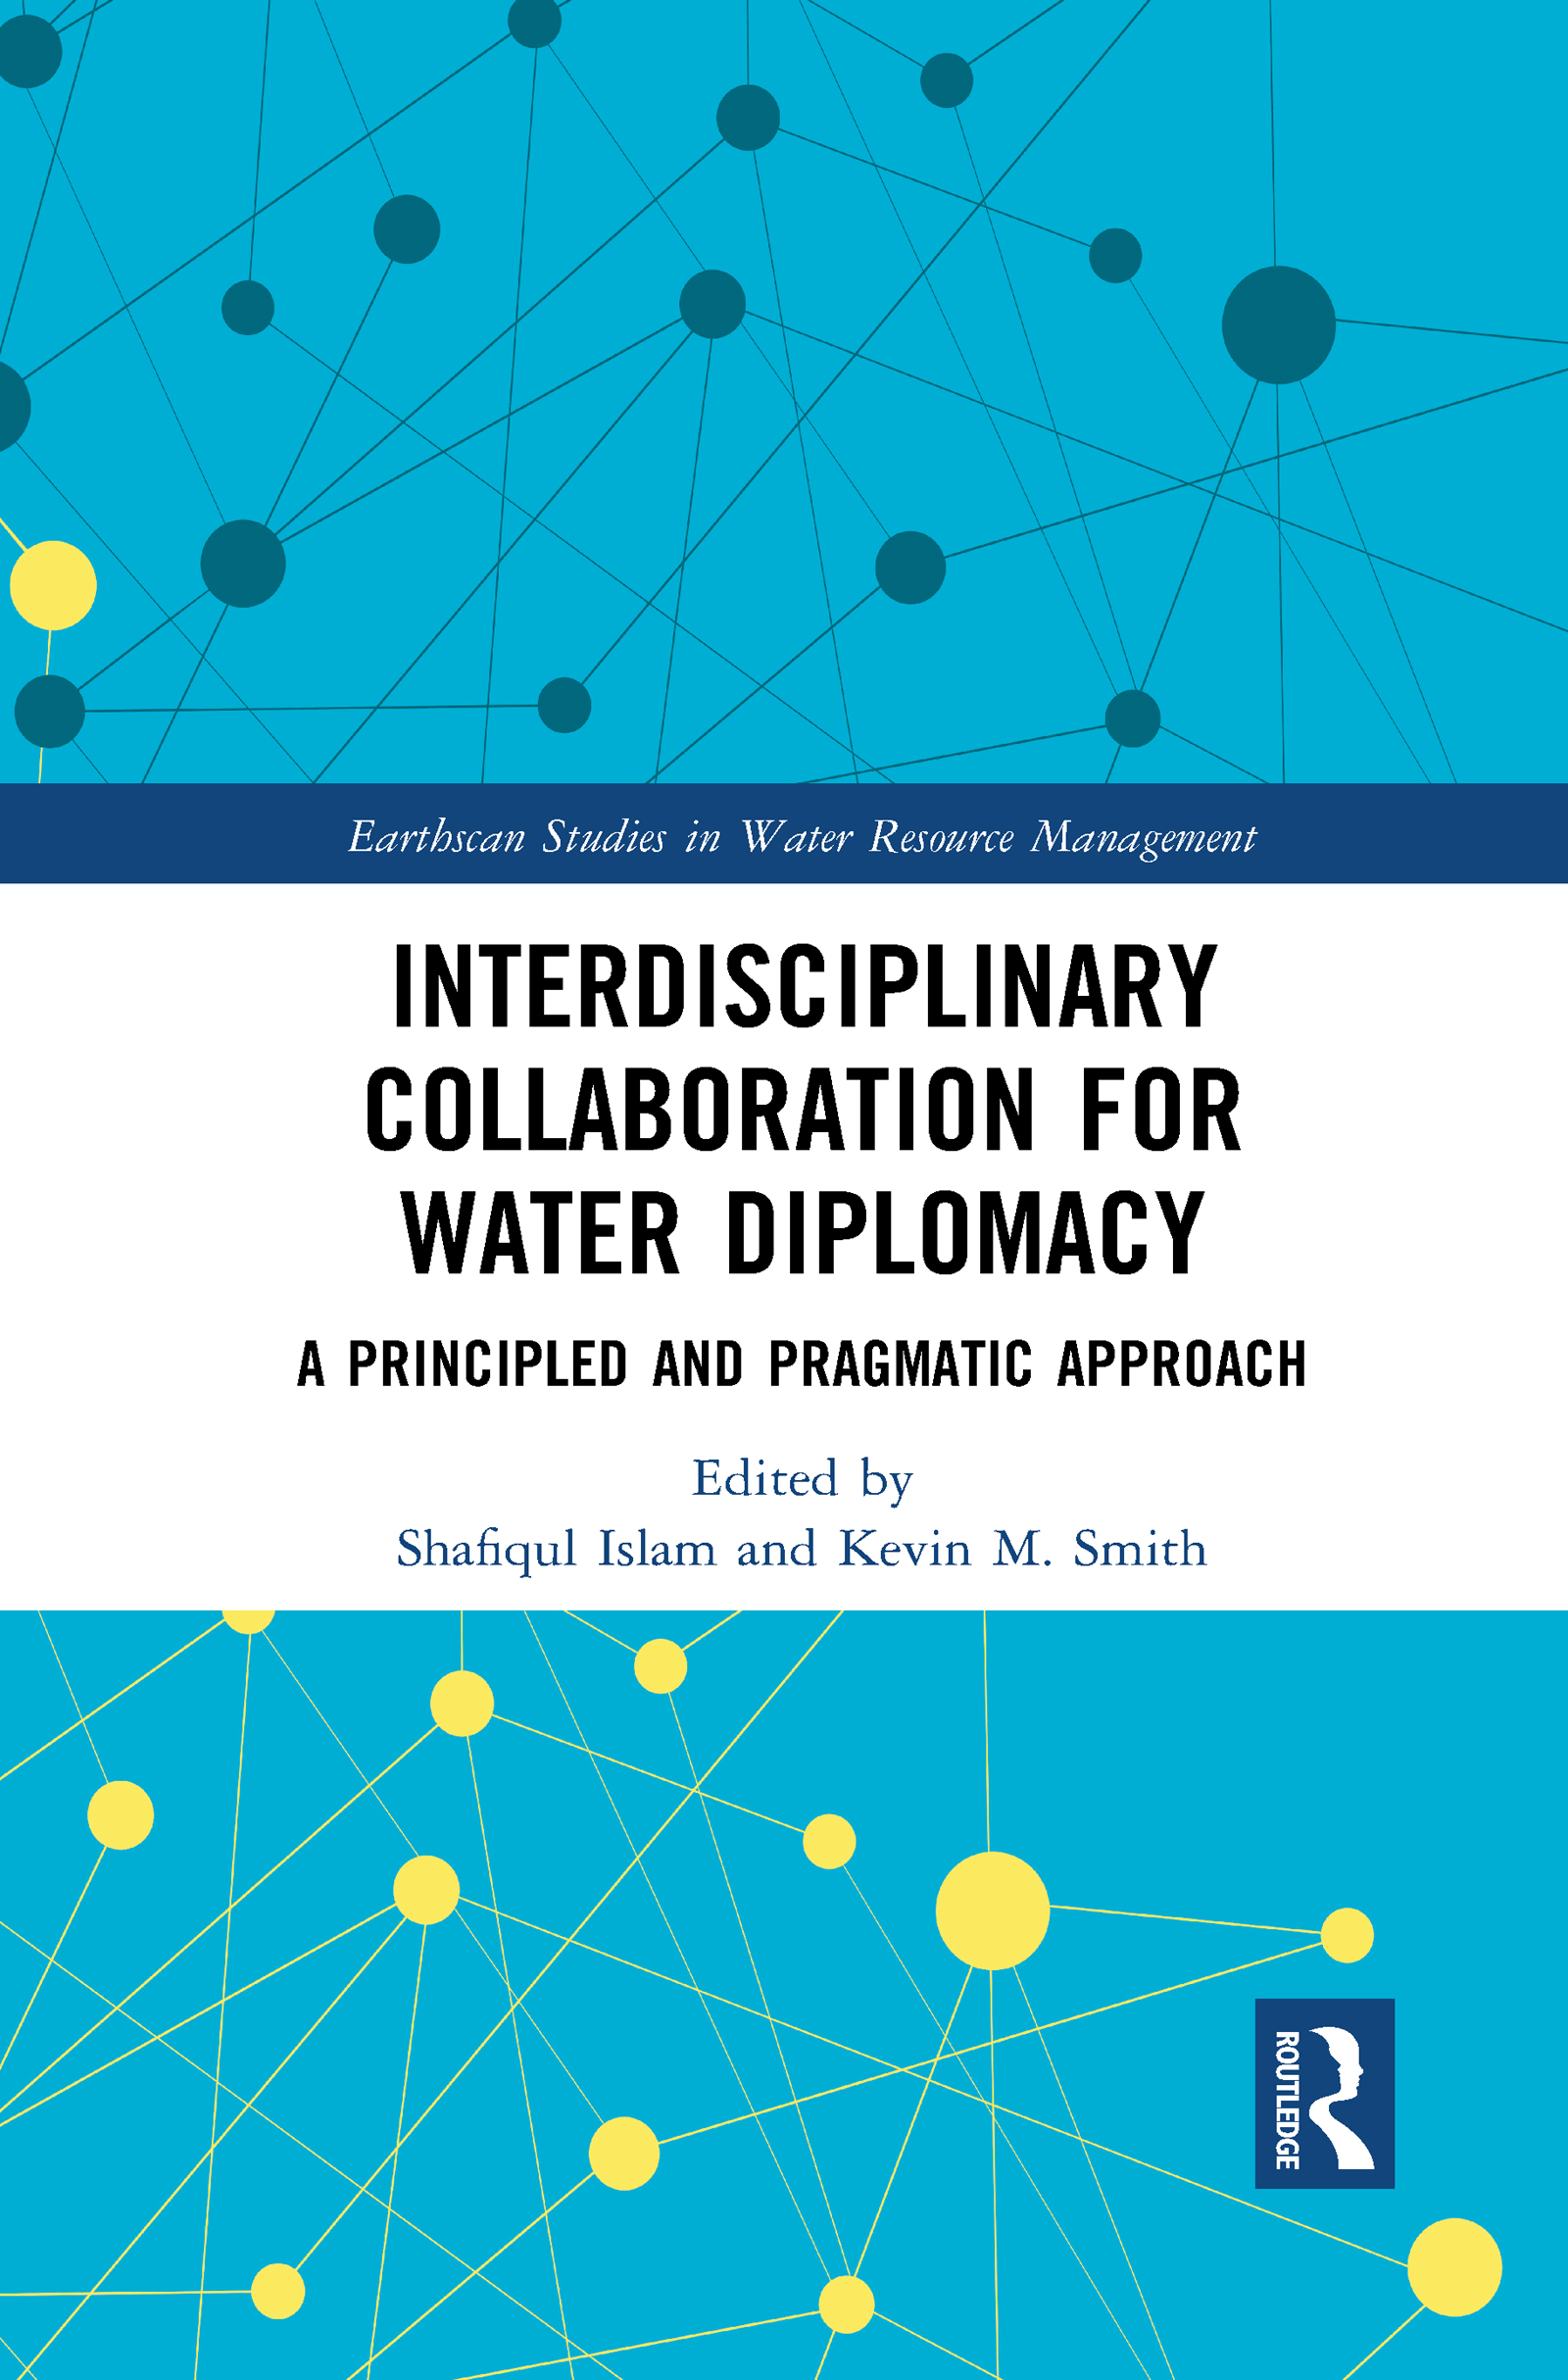 Interdisciplinary Collaboration for Water Diplomacy